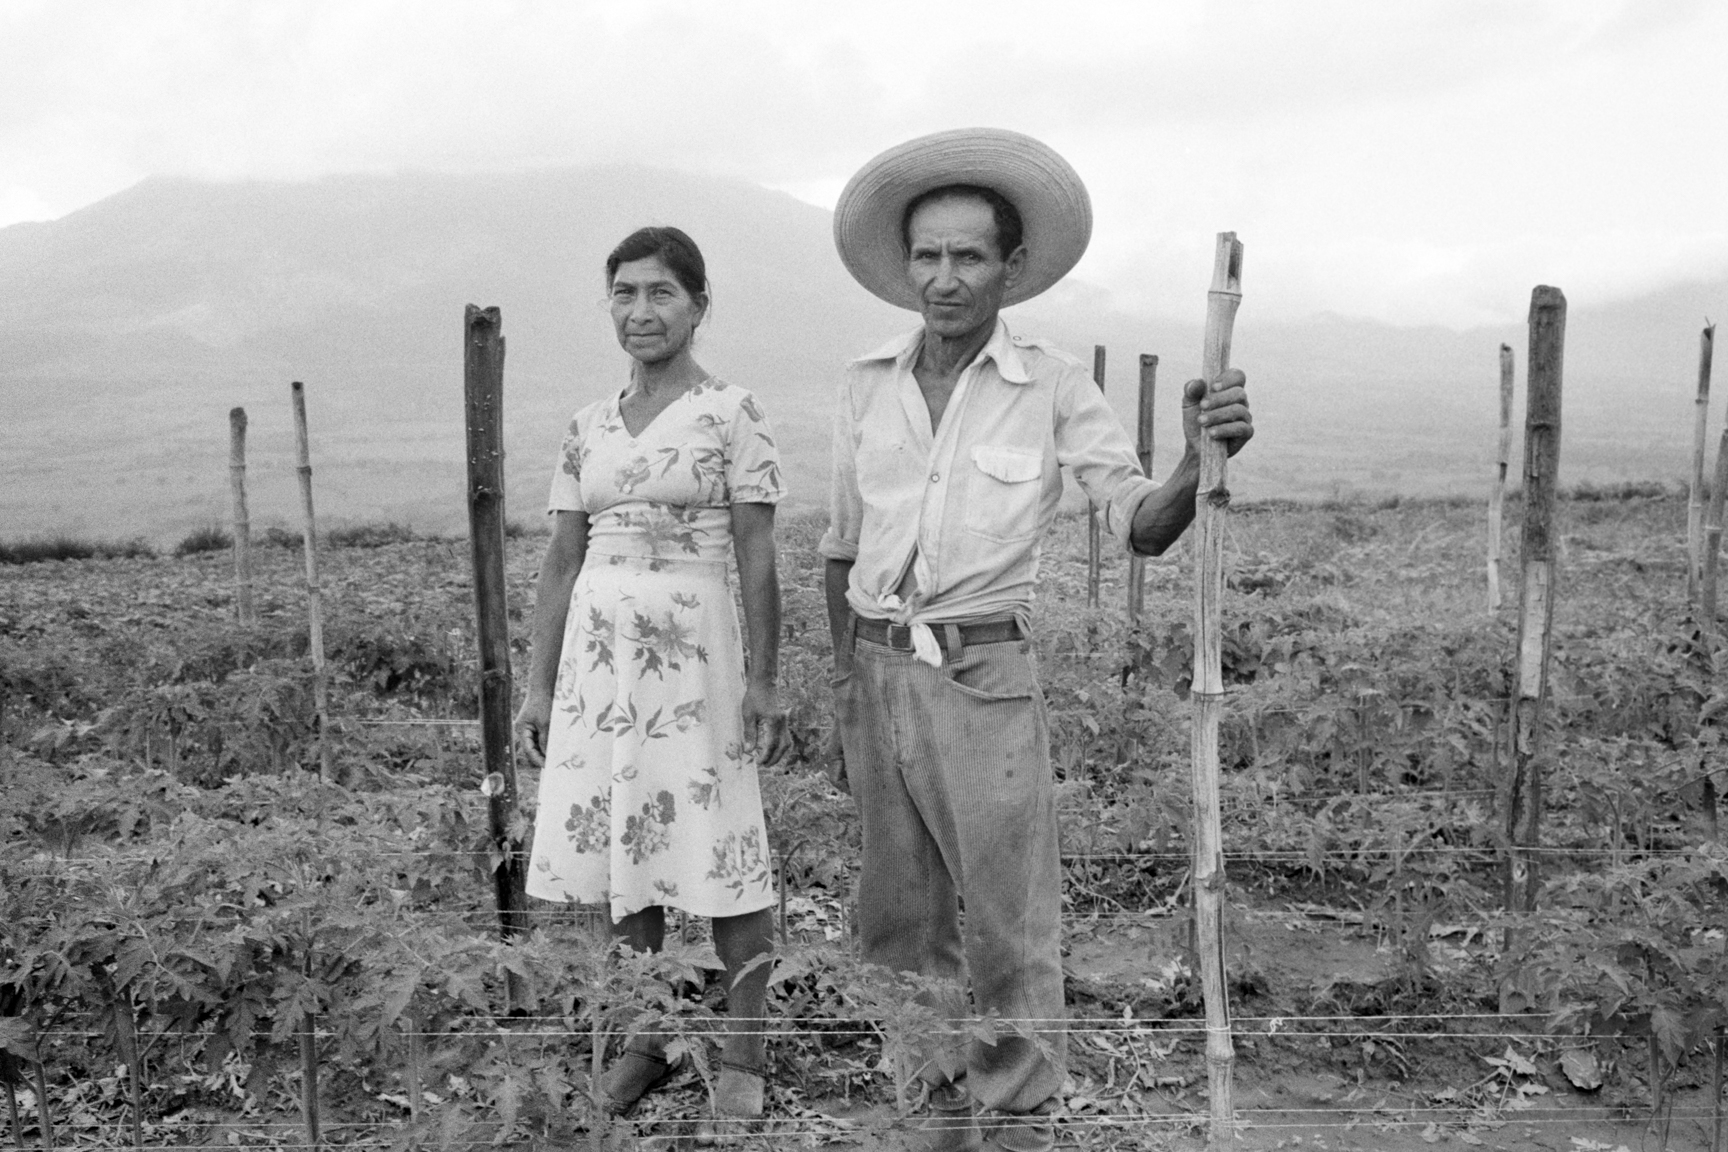 A Salvadoran husband and wife couple stand on their deeded farmland June 26, 1983 in San Vicente, El Salvador. The Salvadoran government under pressure from a violent civil war undertook a land reform program by breaking up large tracts of property owned by prominent families in an effort to quell civil unrest and a left-wing insurgency with wider income distribution and economic opportunities.